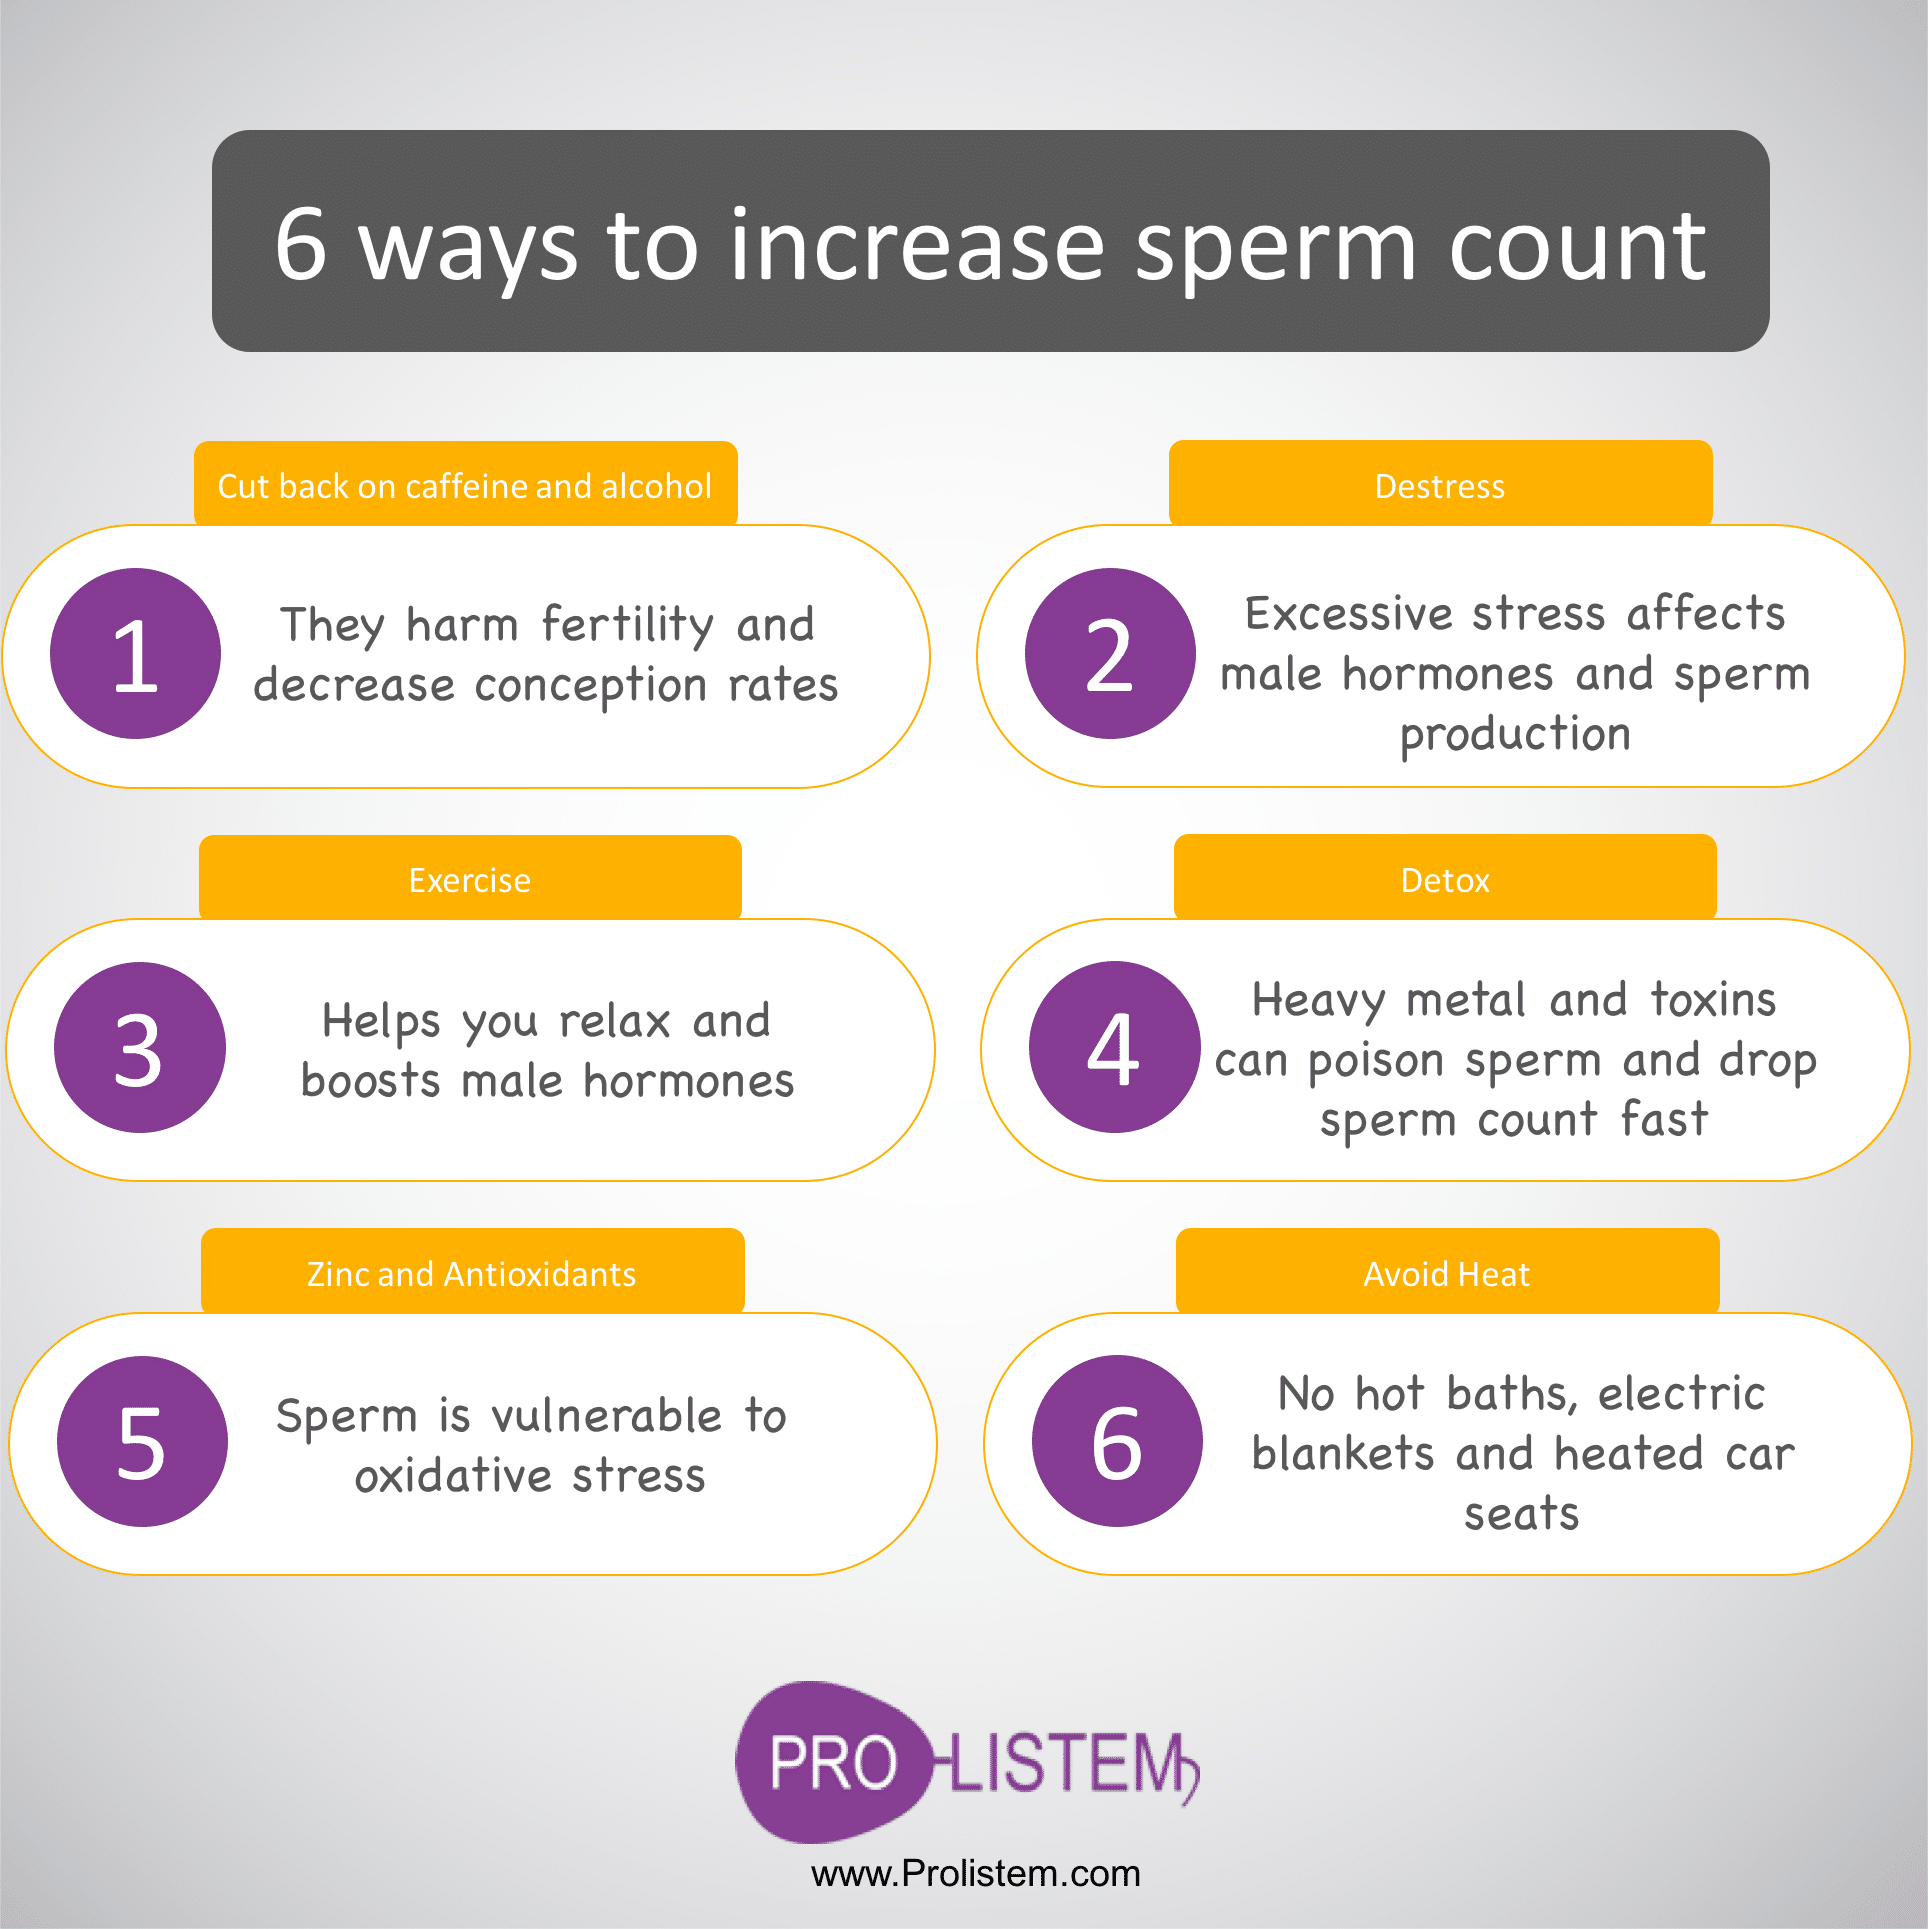 Ways to decrease sperm count